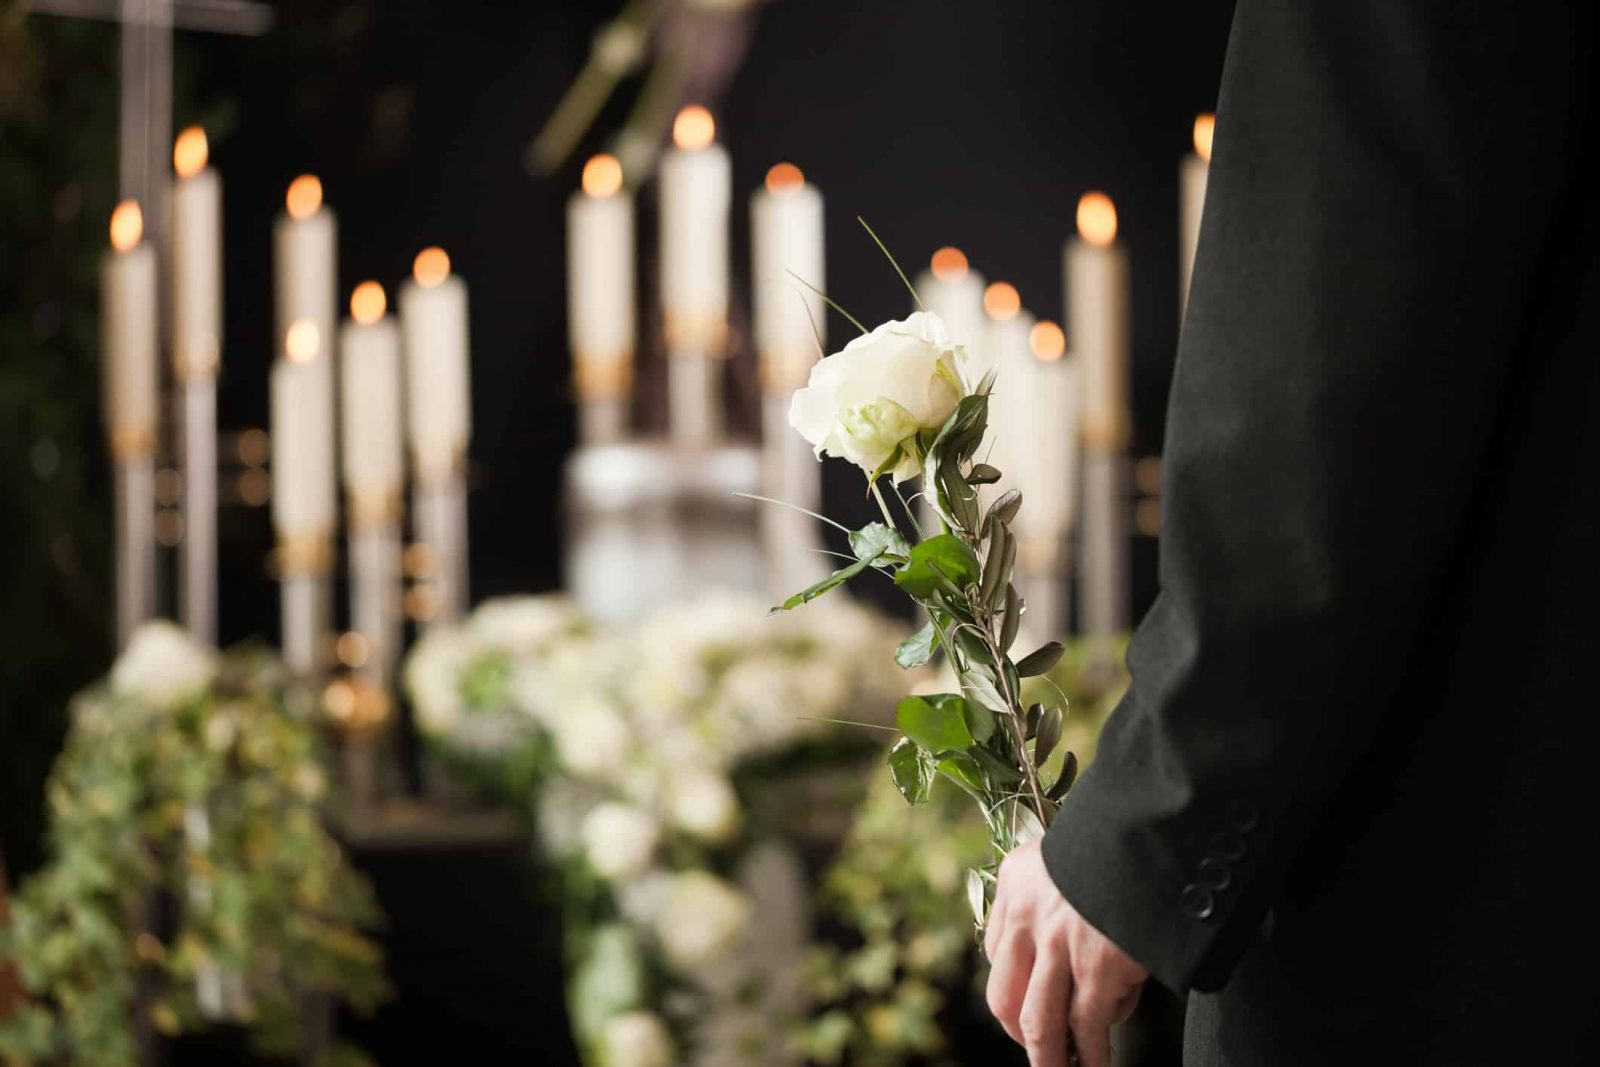 Man holding a white rose in front of urn at funeral